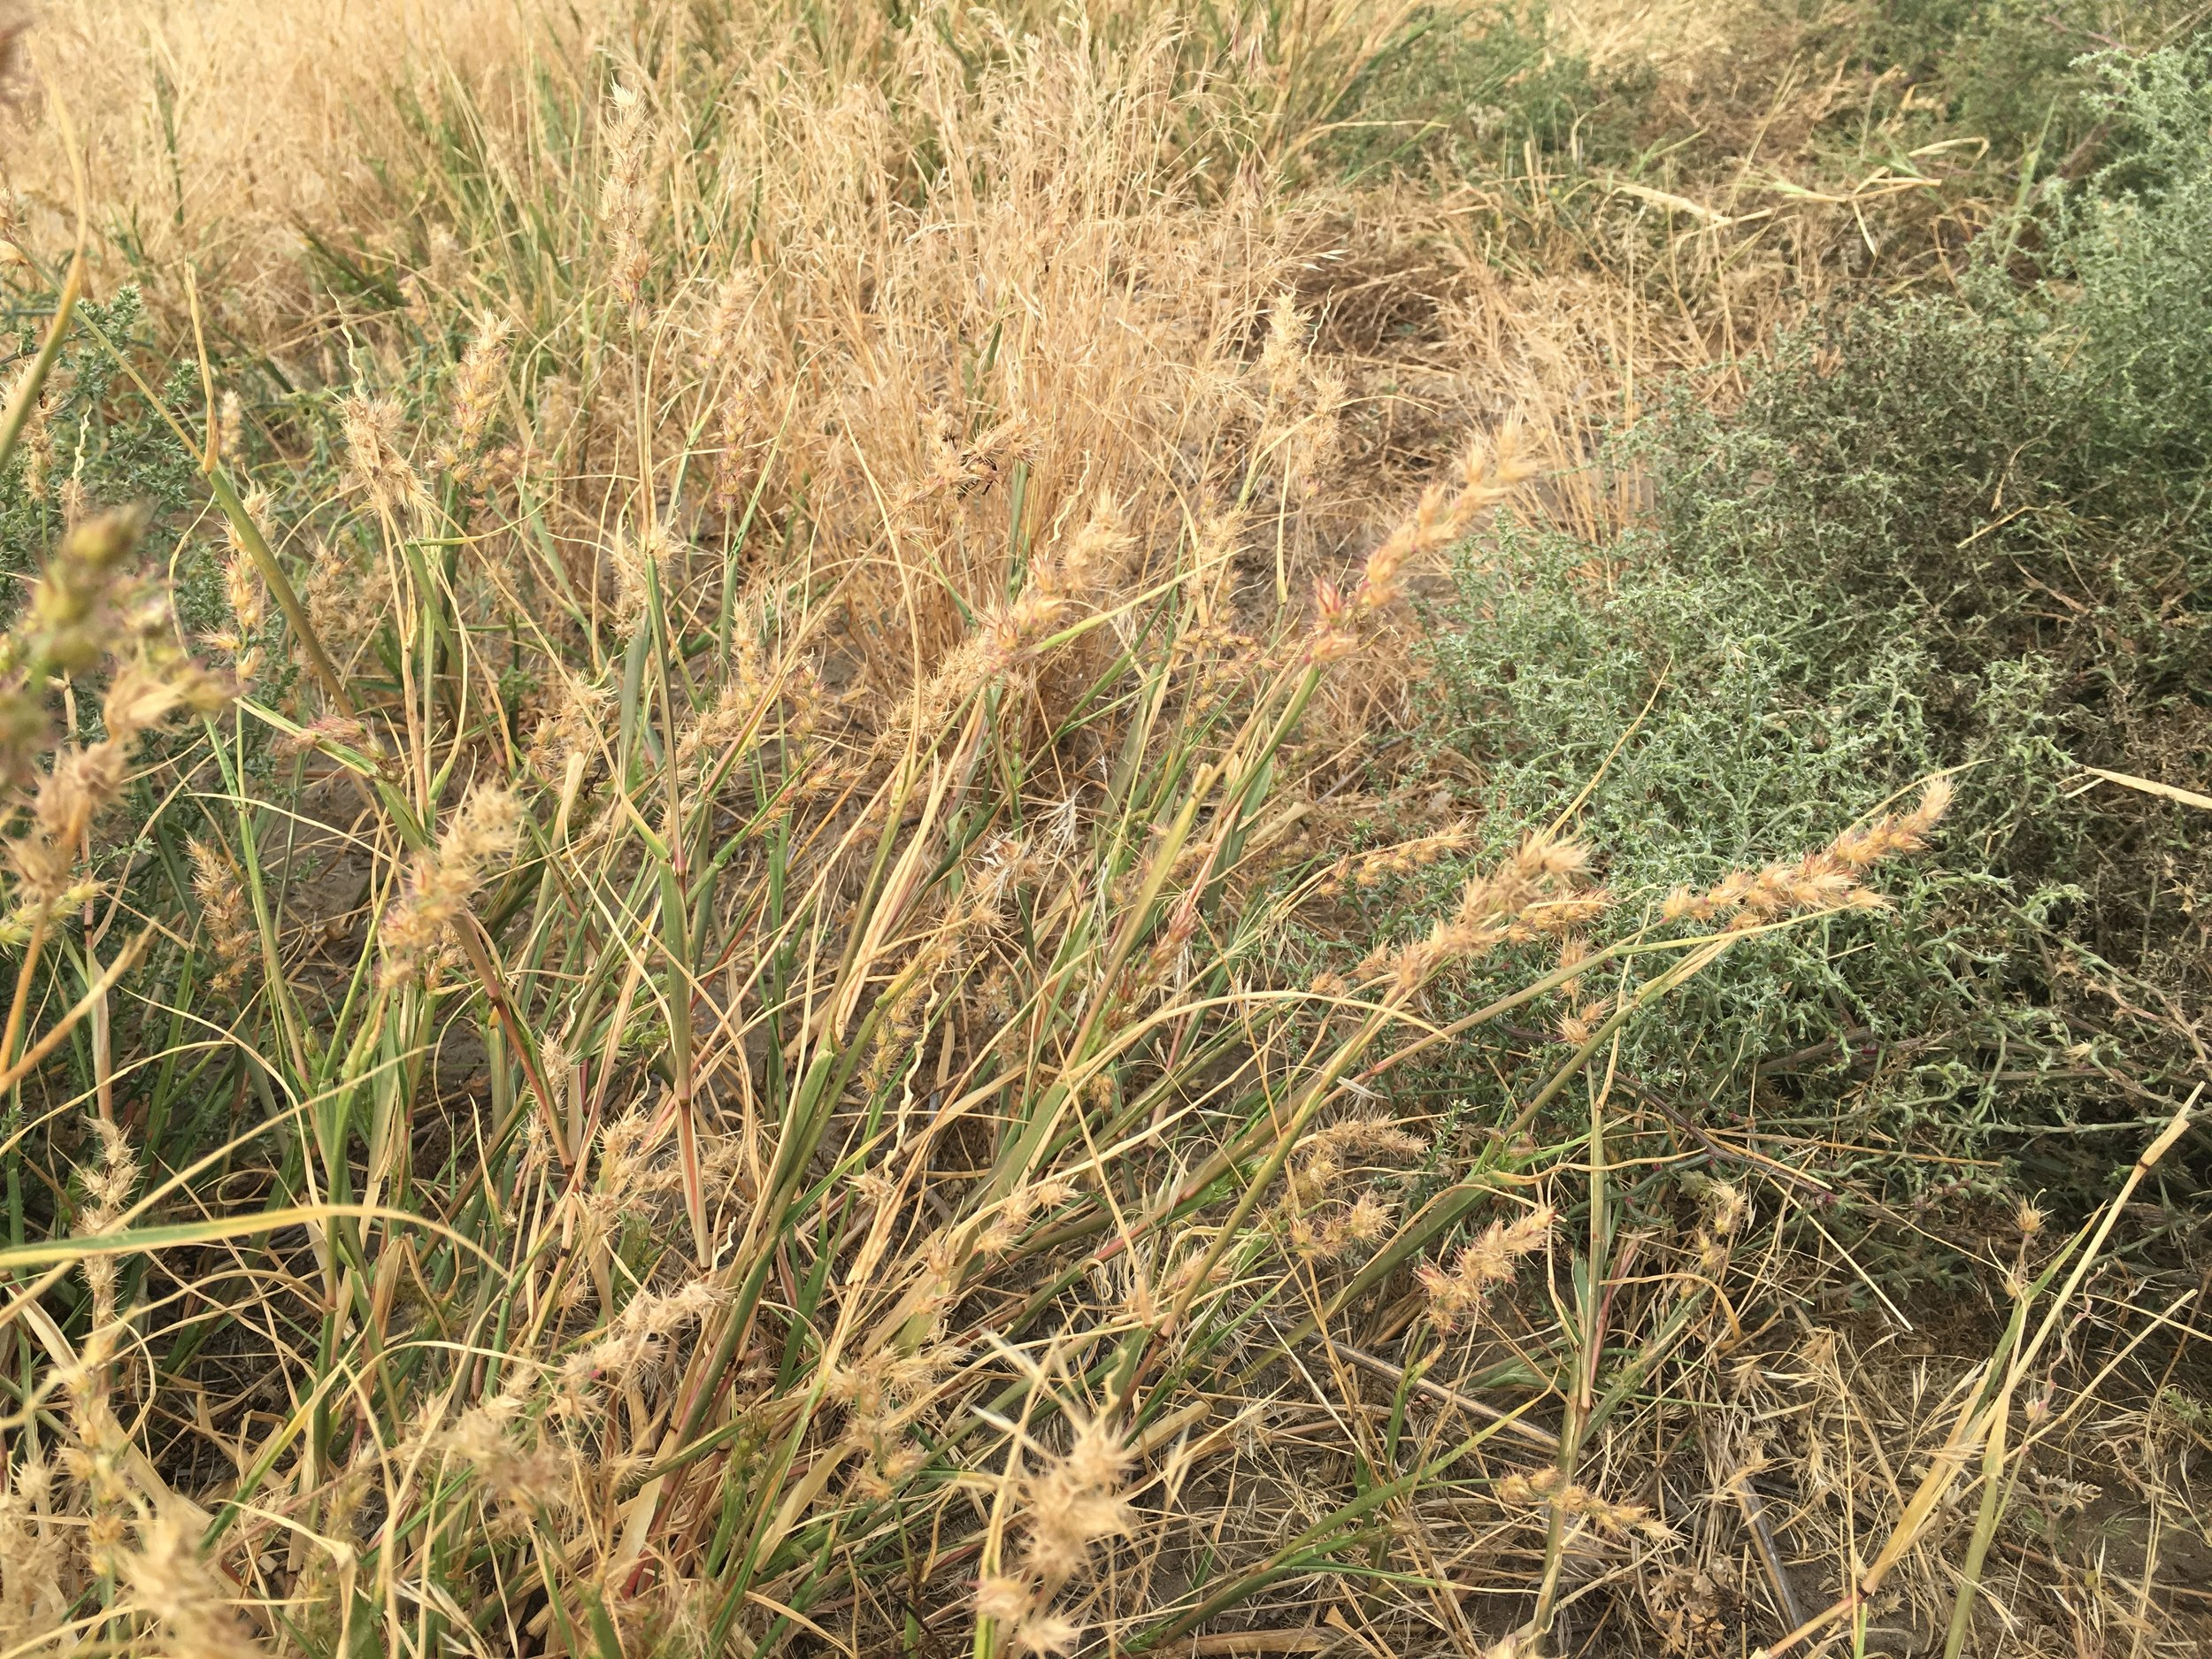 Longspine sandbur spreads by seeds that contain small hooks which latch onto clothing, tires and animal fur.